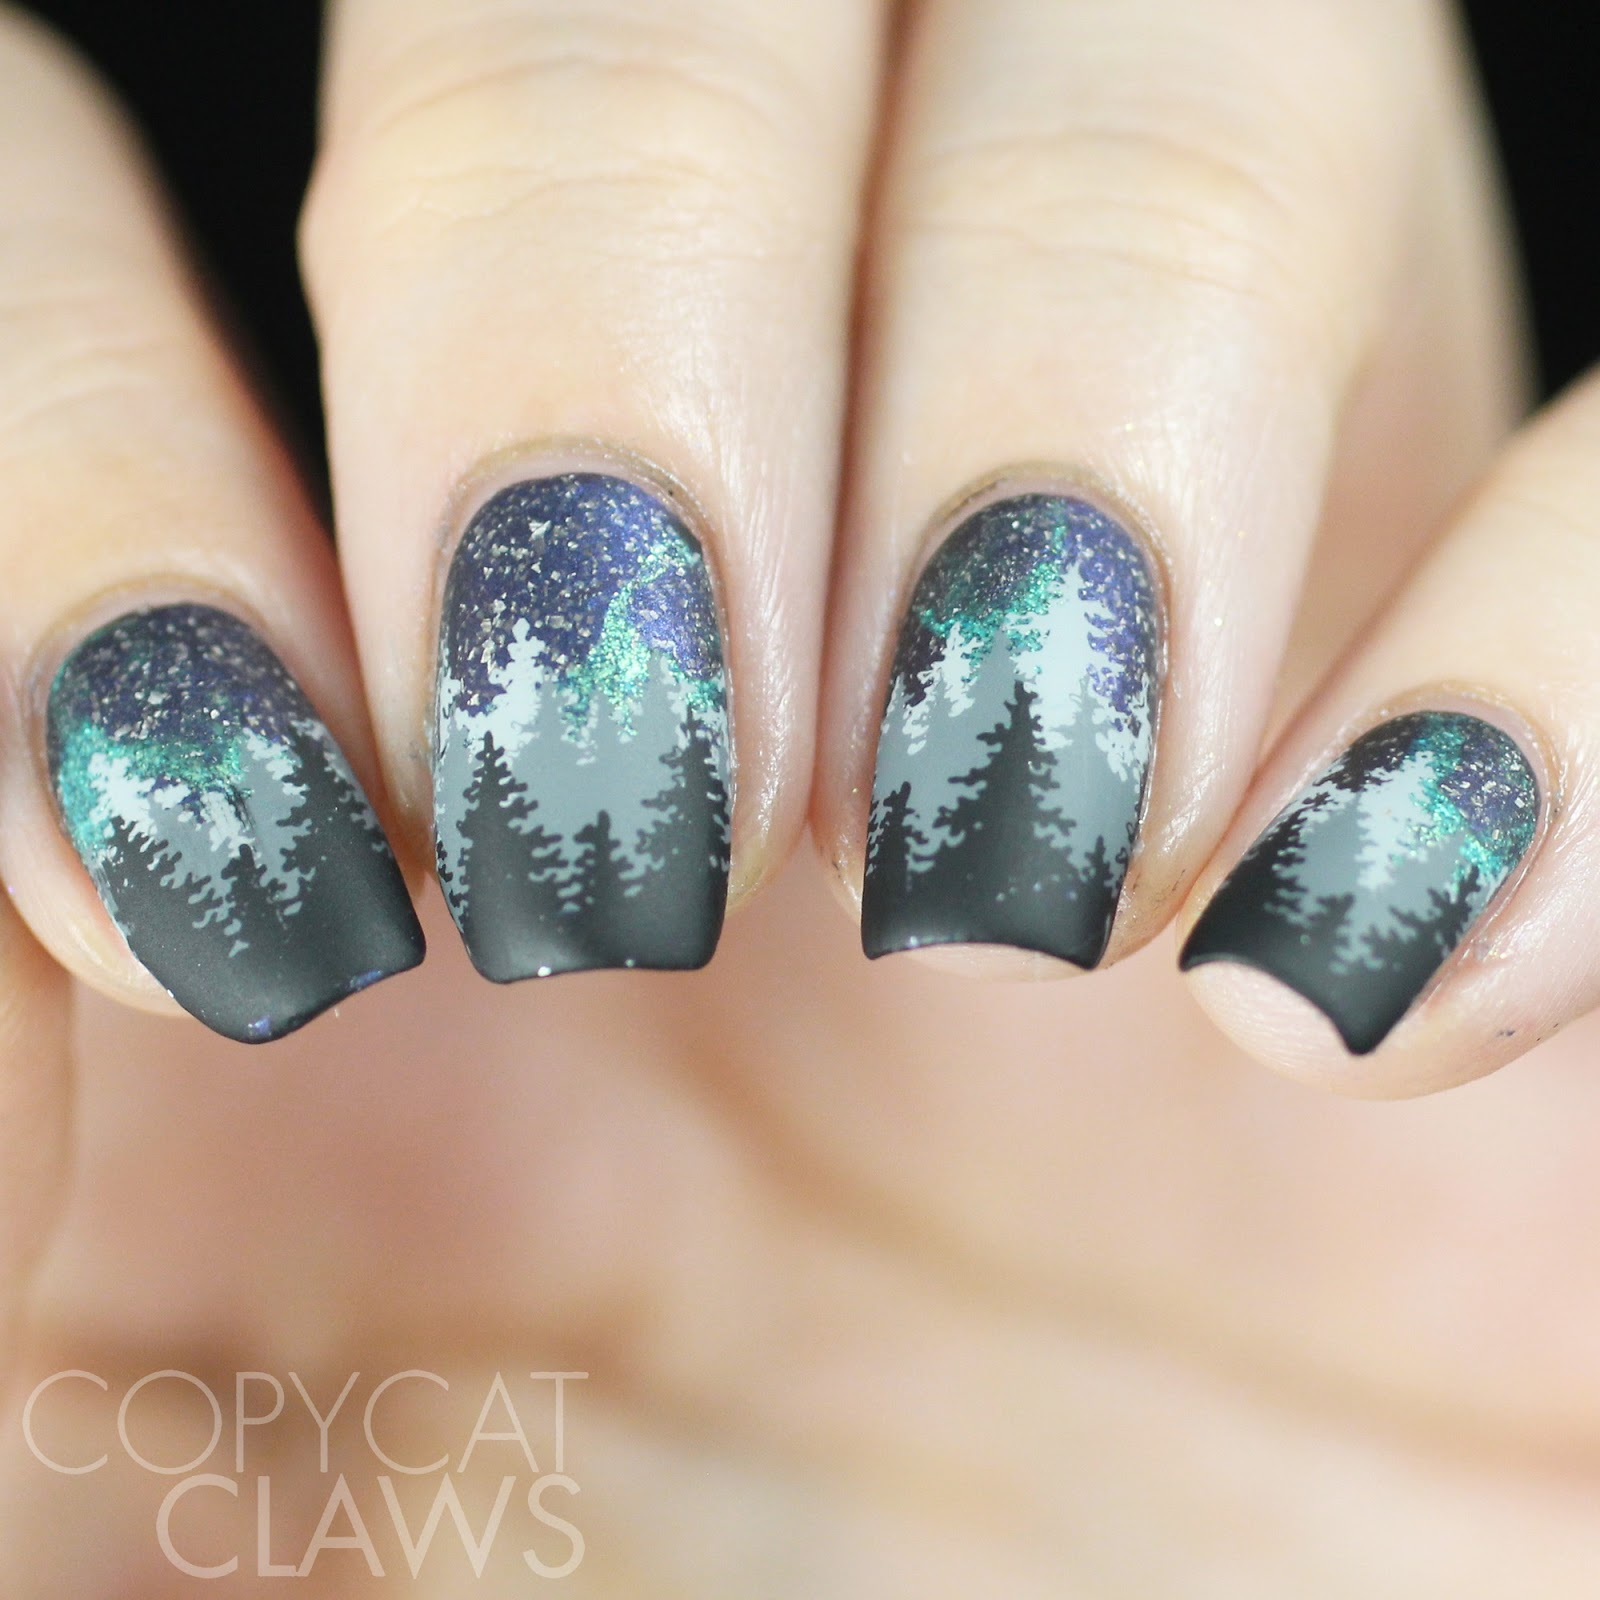 Copycat Claws: The Digit-al Dozen does Indie Love - KBShimmer and ...